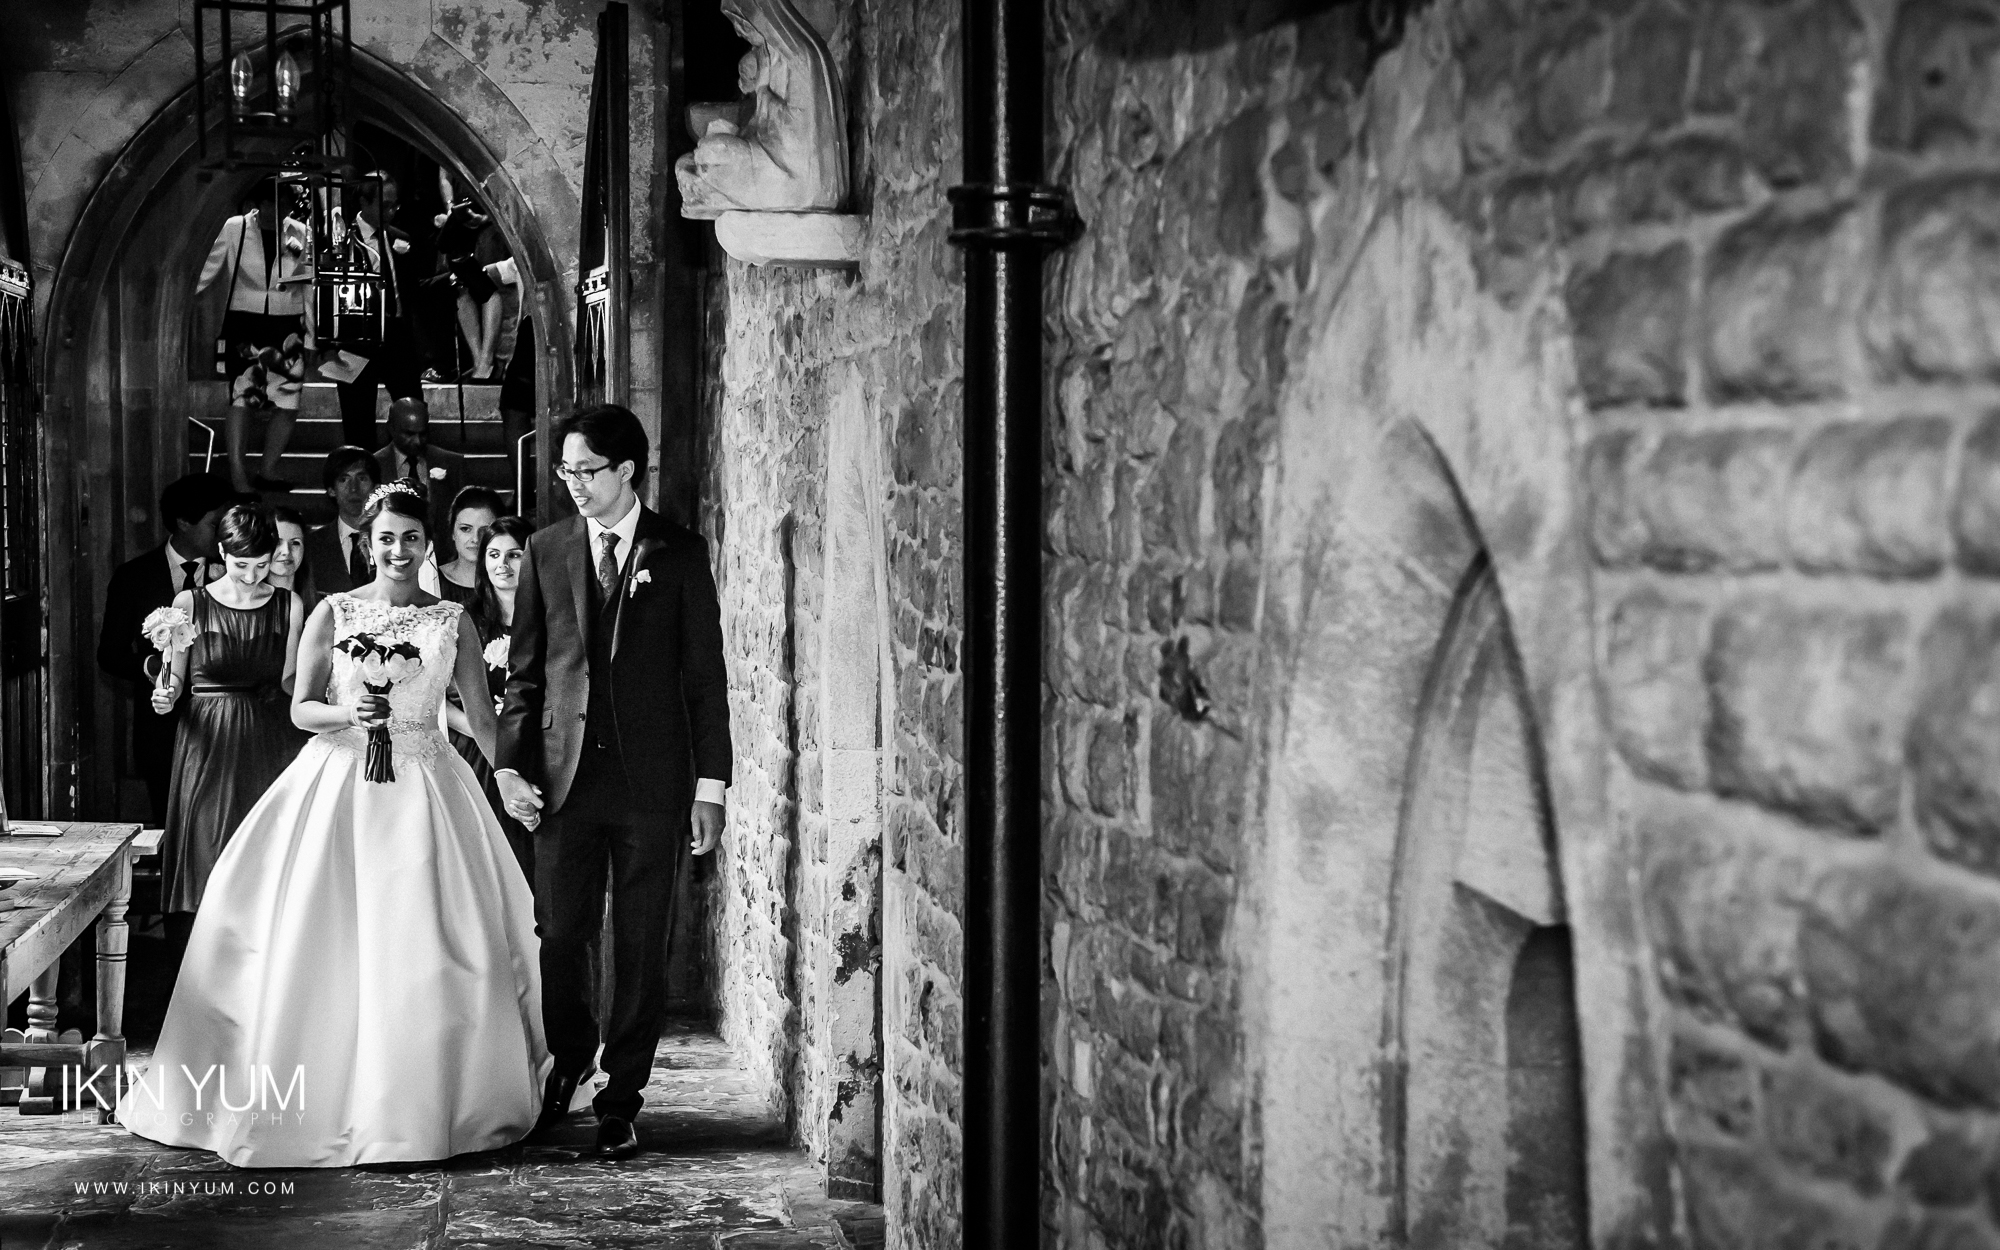 St etheldreda's church Wedding- Ikin Yum Photography-0048.jpg